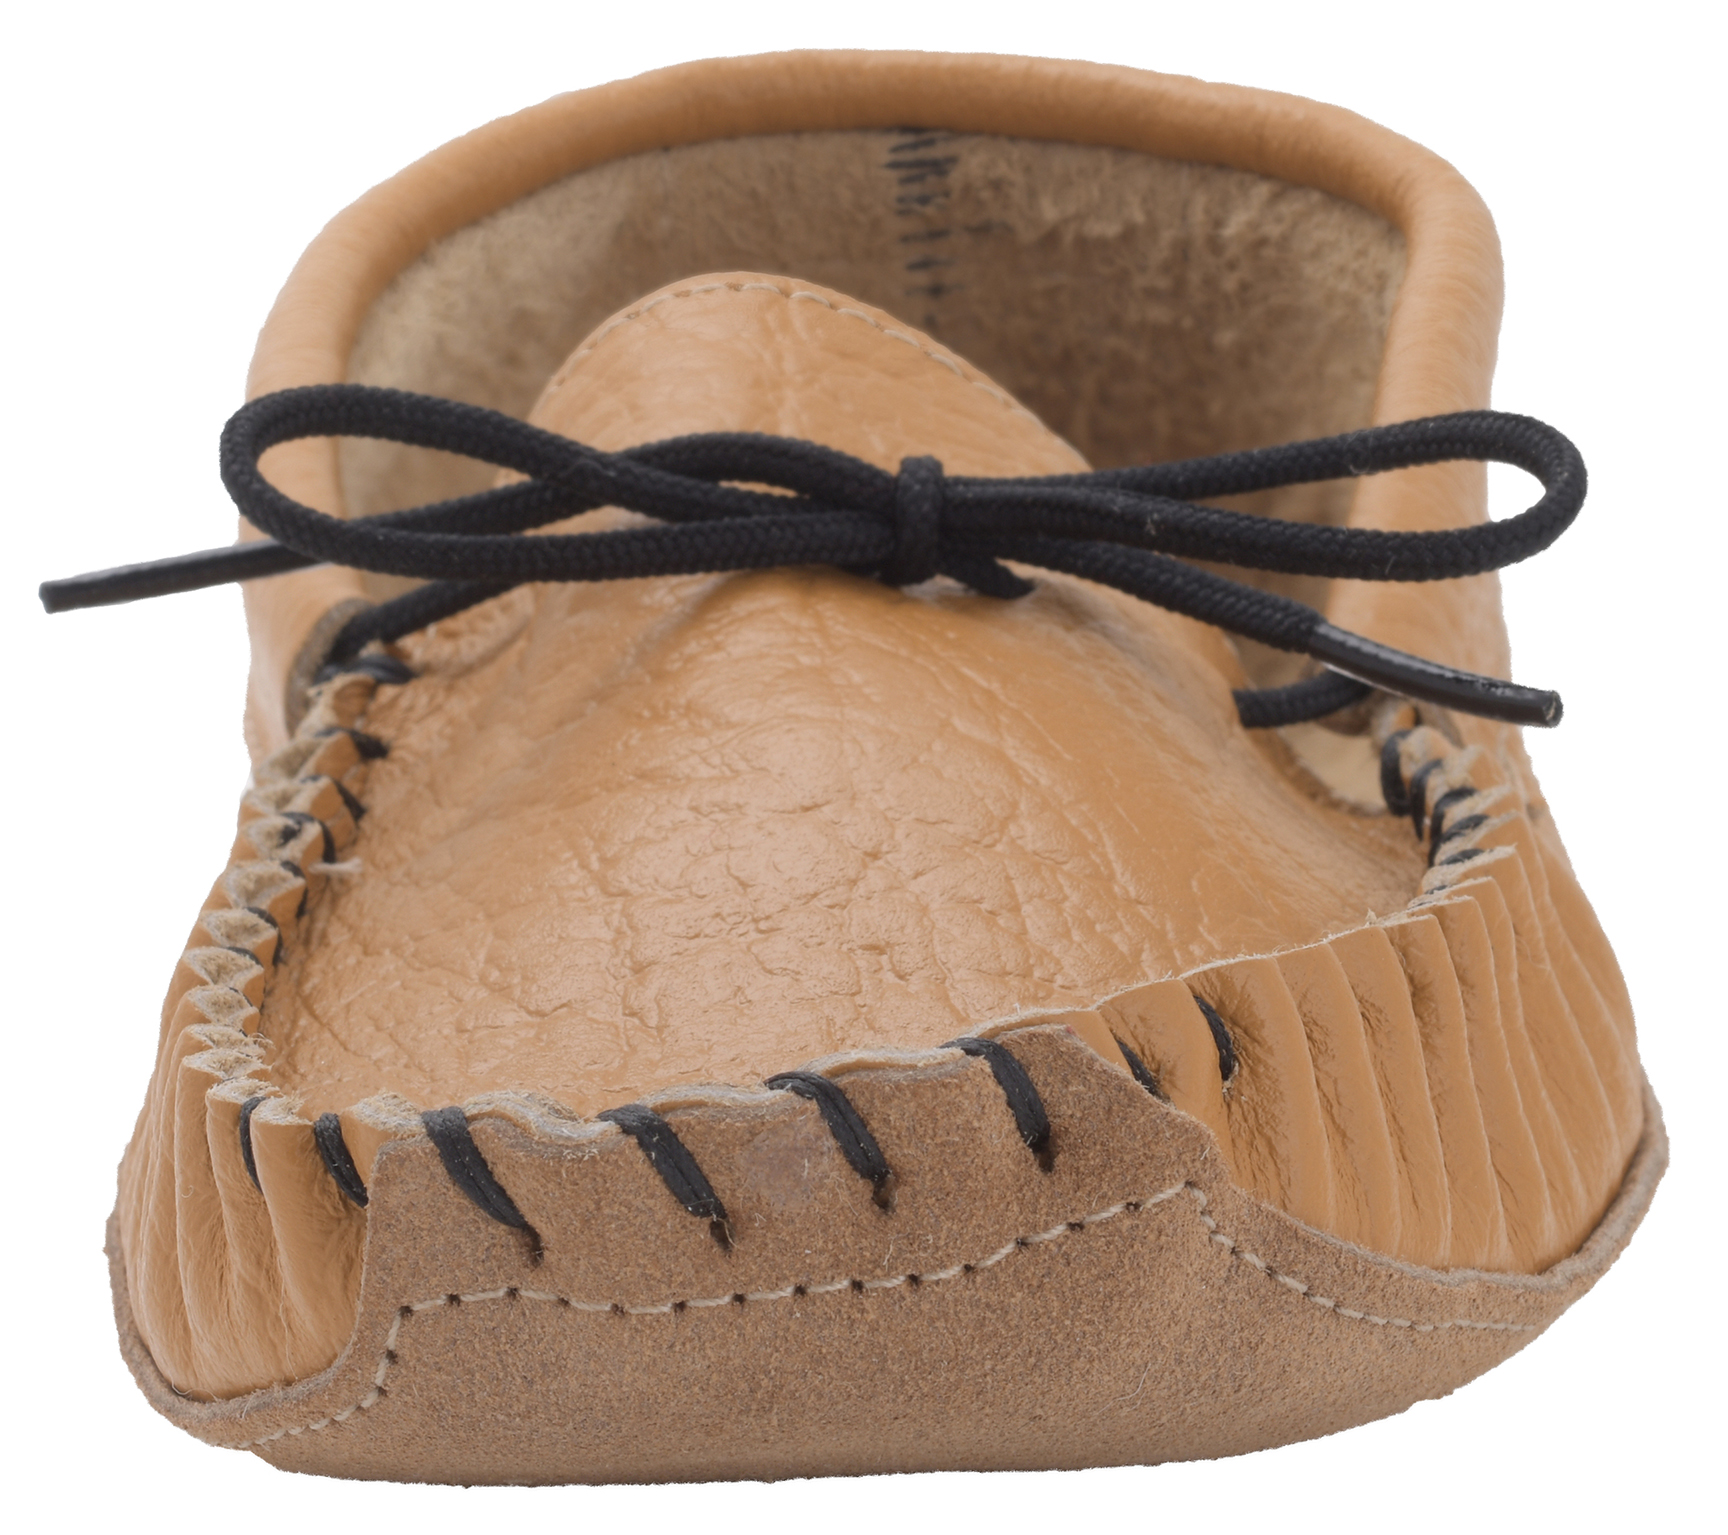 Leather-Earthing-Grounding-Moccasin-Slippers-Made-in-the-UK-Mens-amp-Ladies thumbnail 5